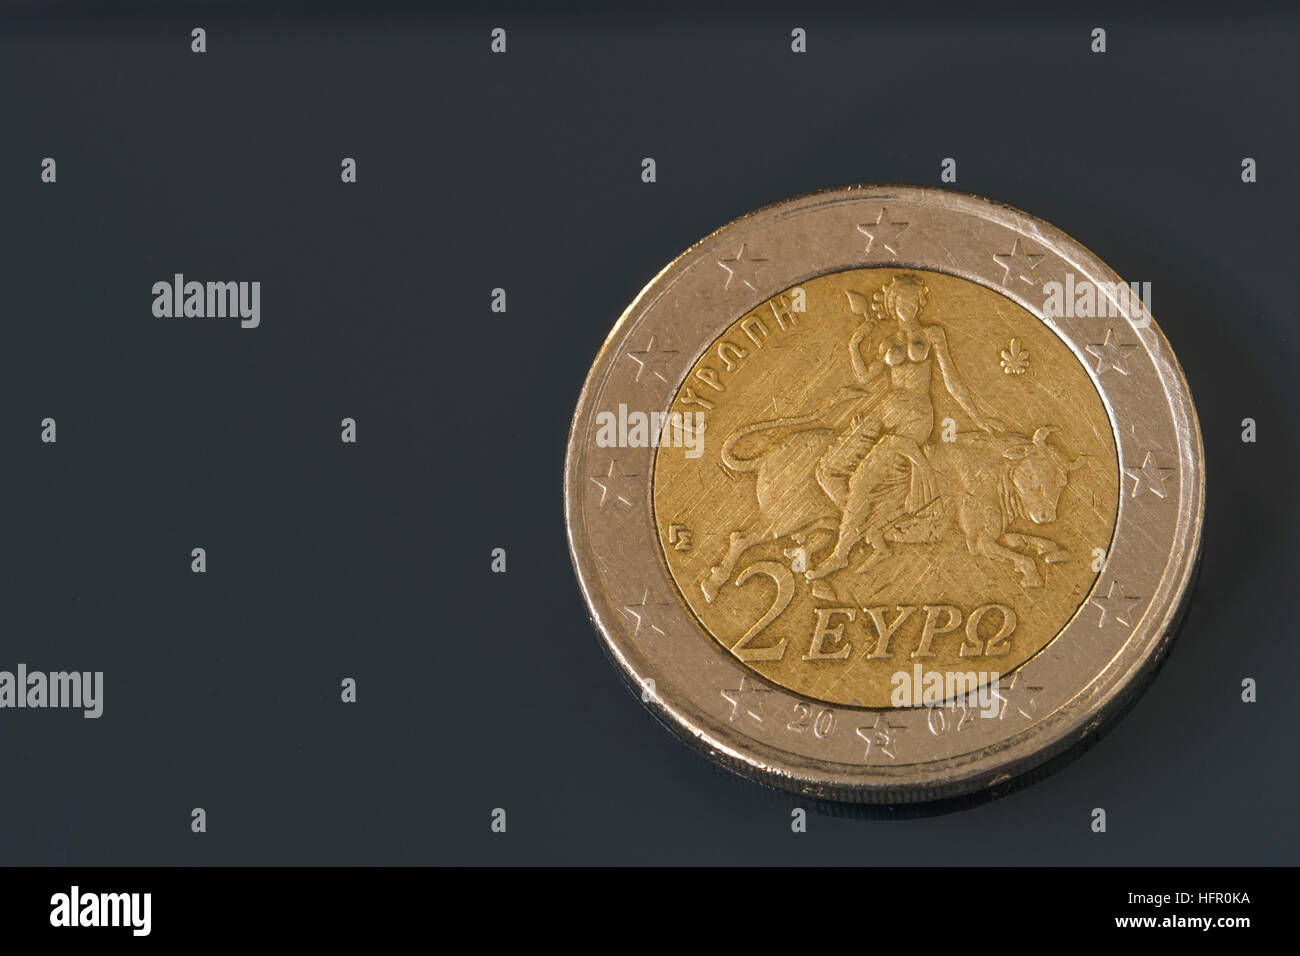 Two, 2 Euro coin from Greece, regular mint, Europa riding the bull - Stock Image